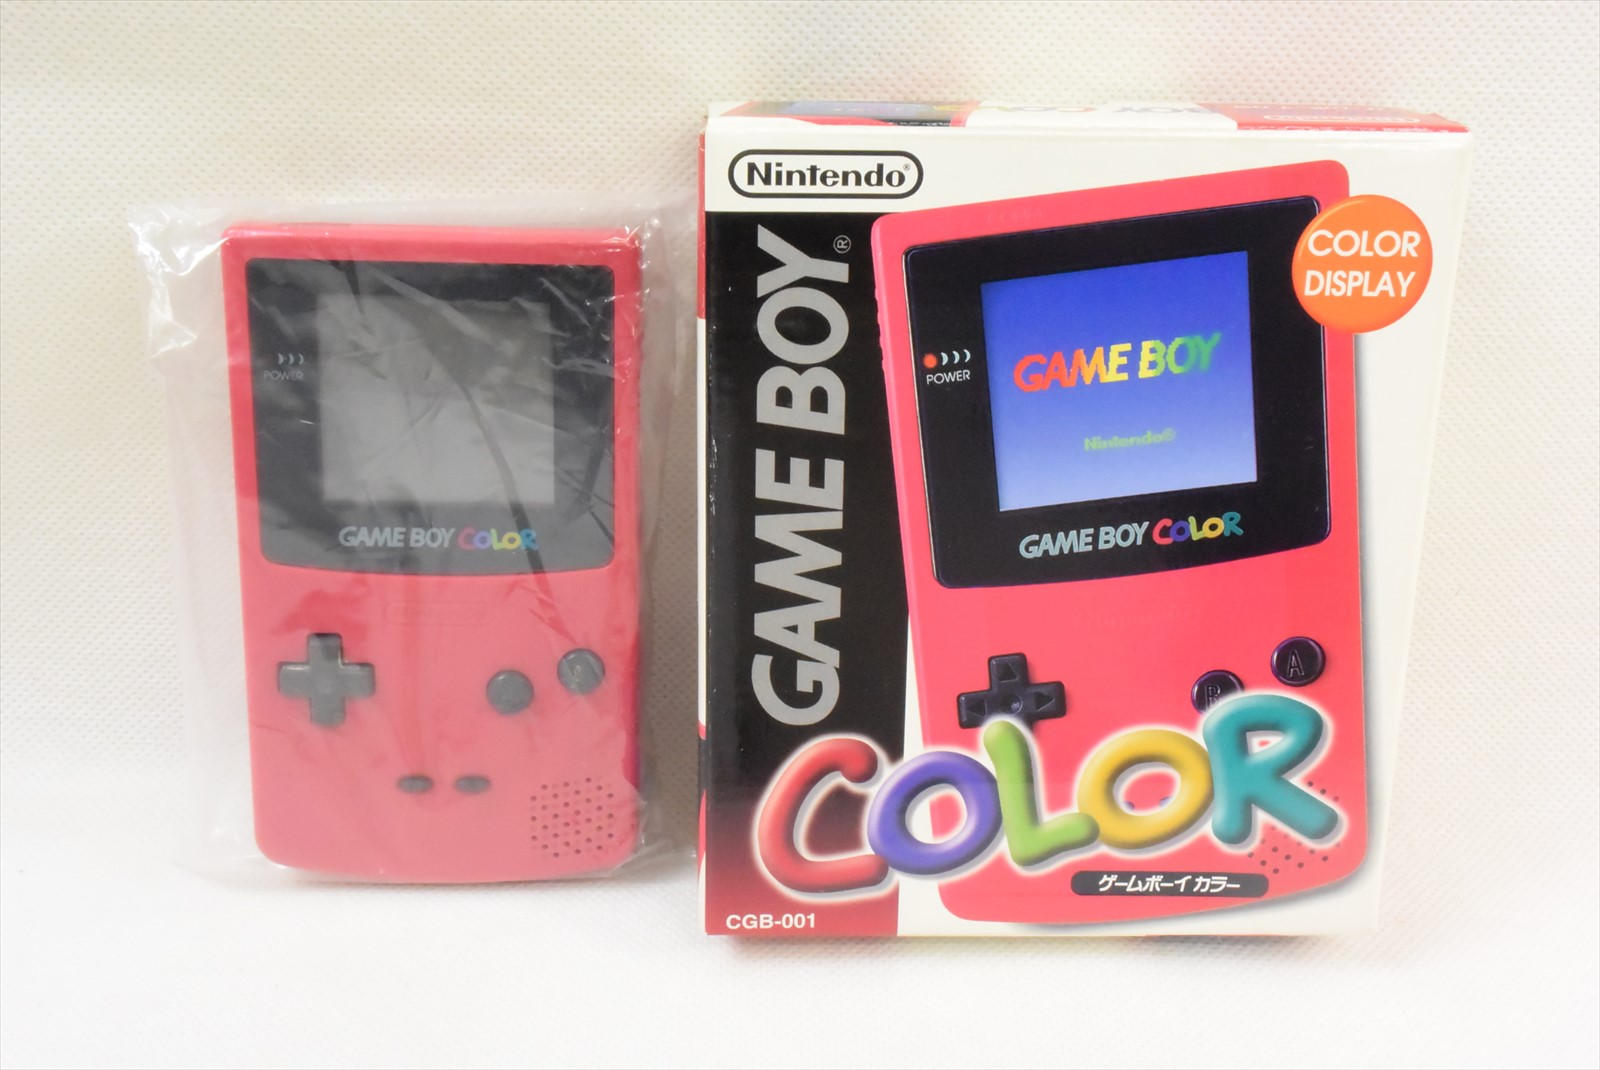 Game boy color japan - Game Boy Color Red Console Boxed Item Ref 0722 Nintendo Cgb 001 Tested Japan Gb